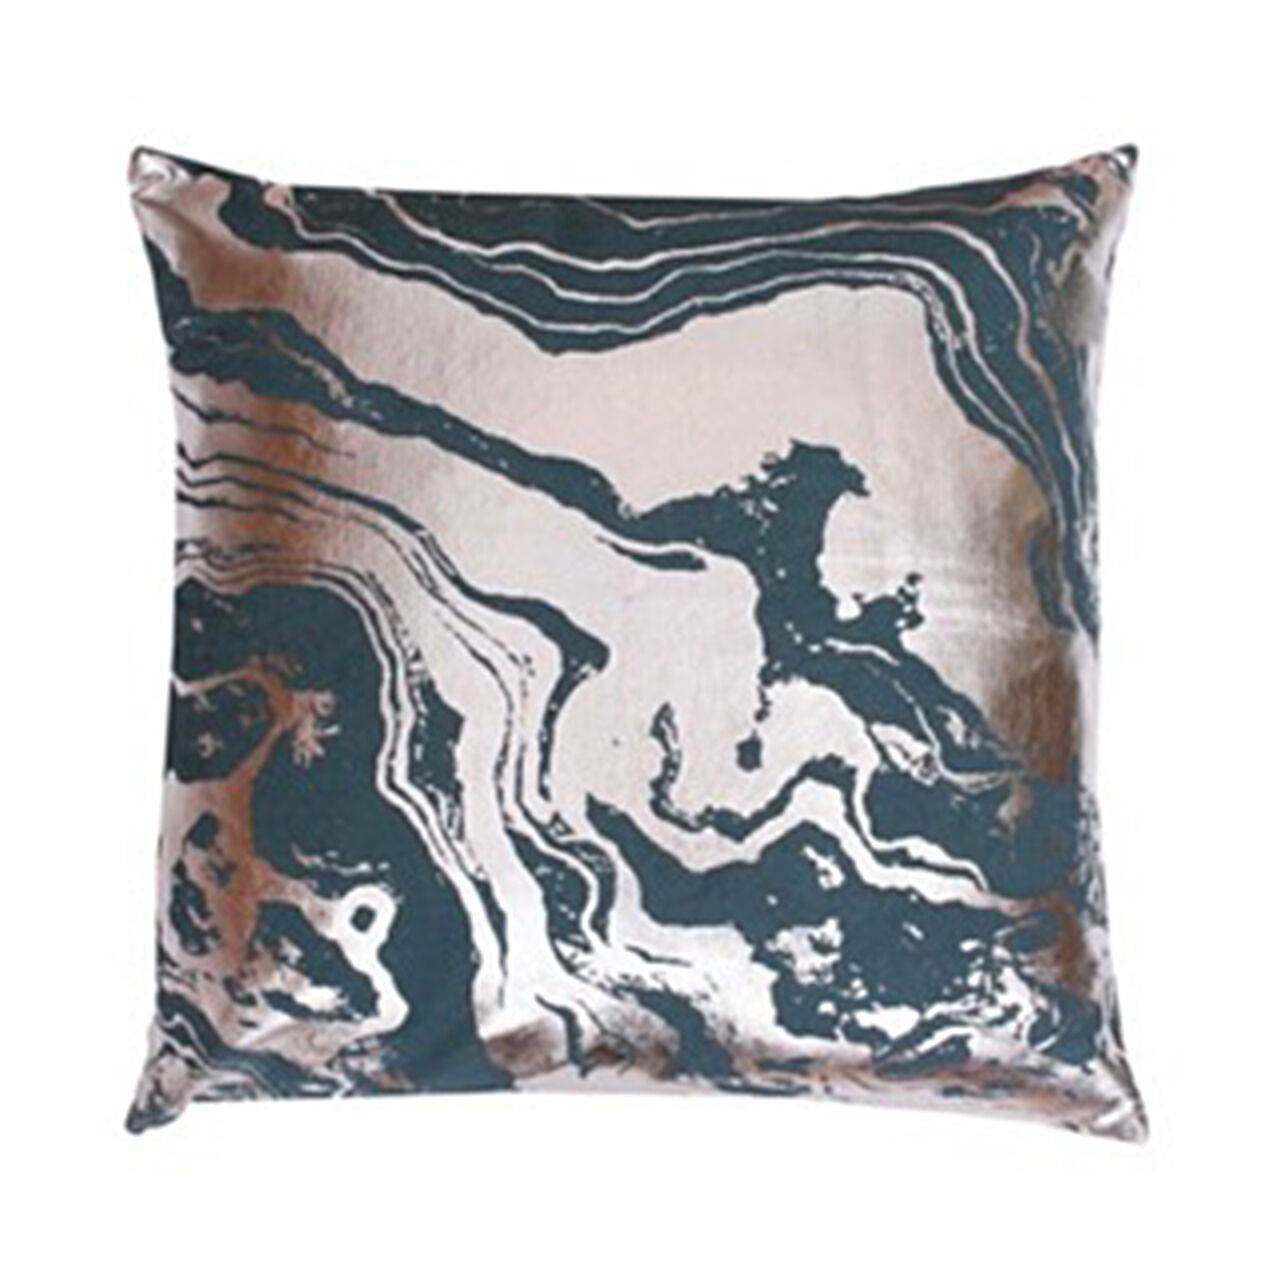 Brown and teal throw pillows - Justine Marble Pillow Teal 18 In